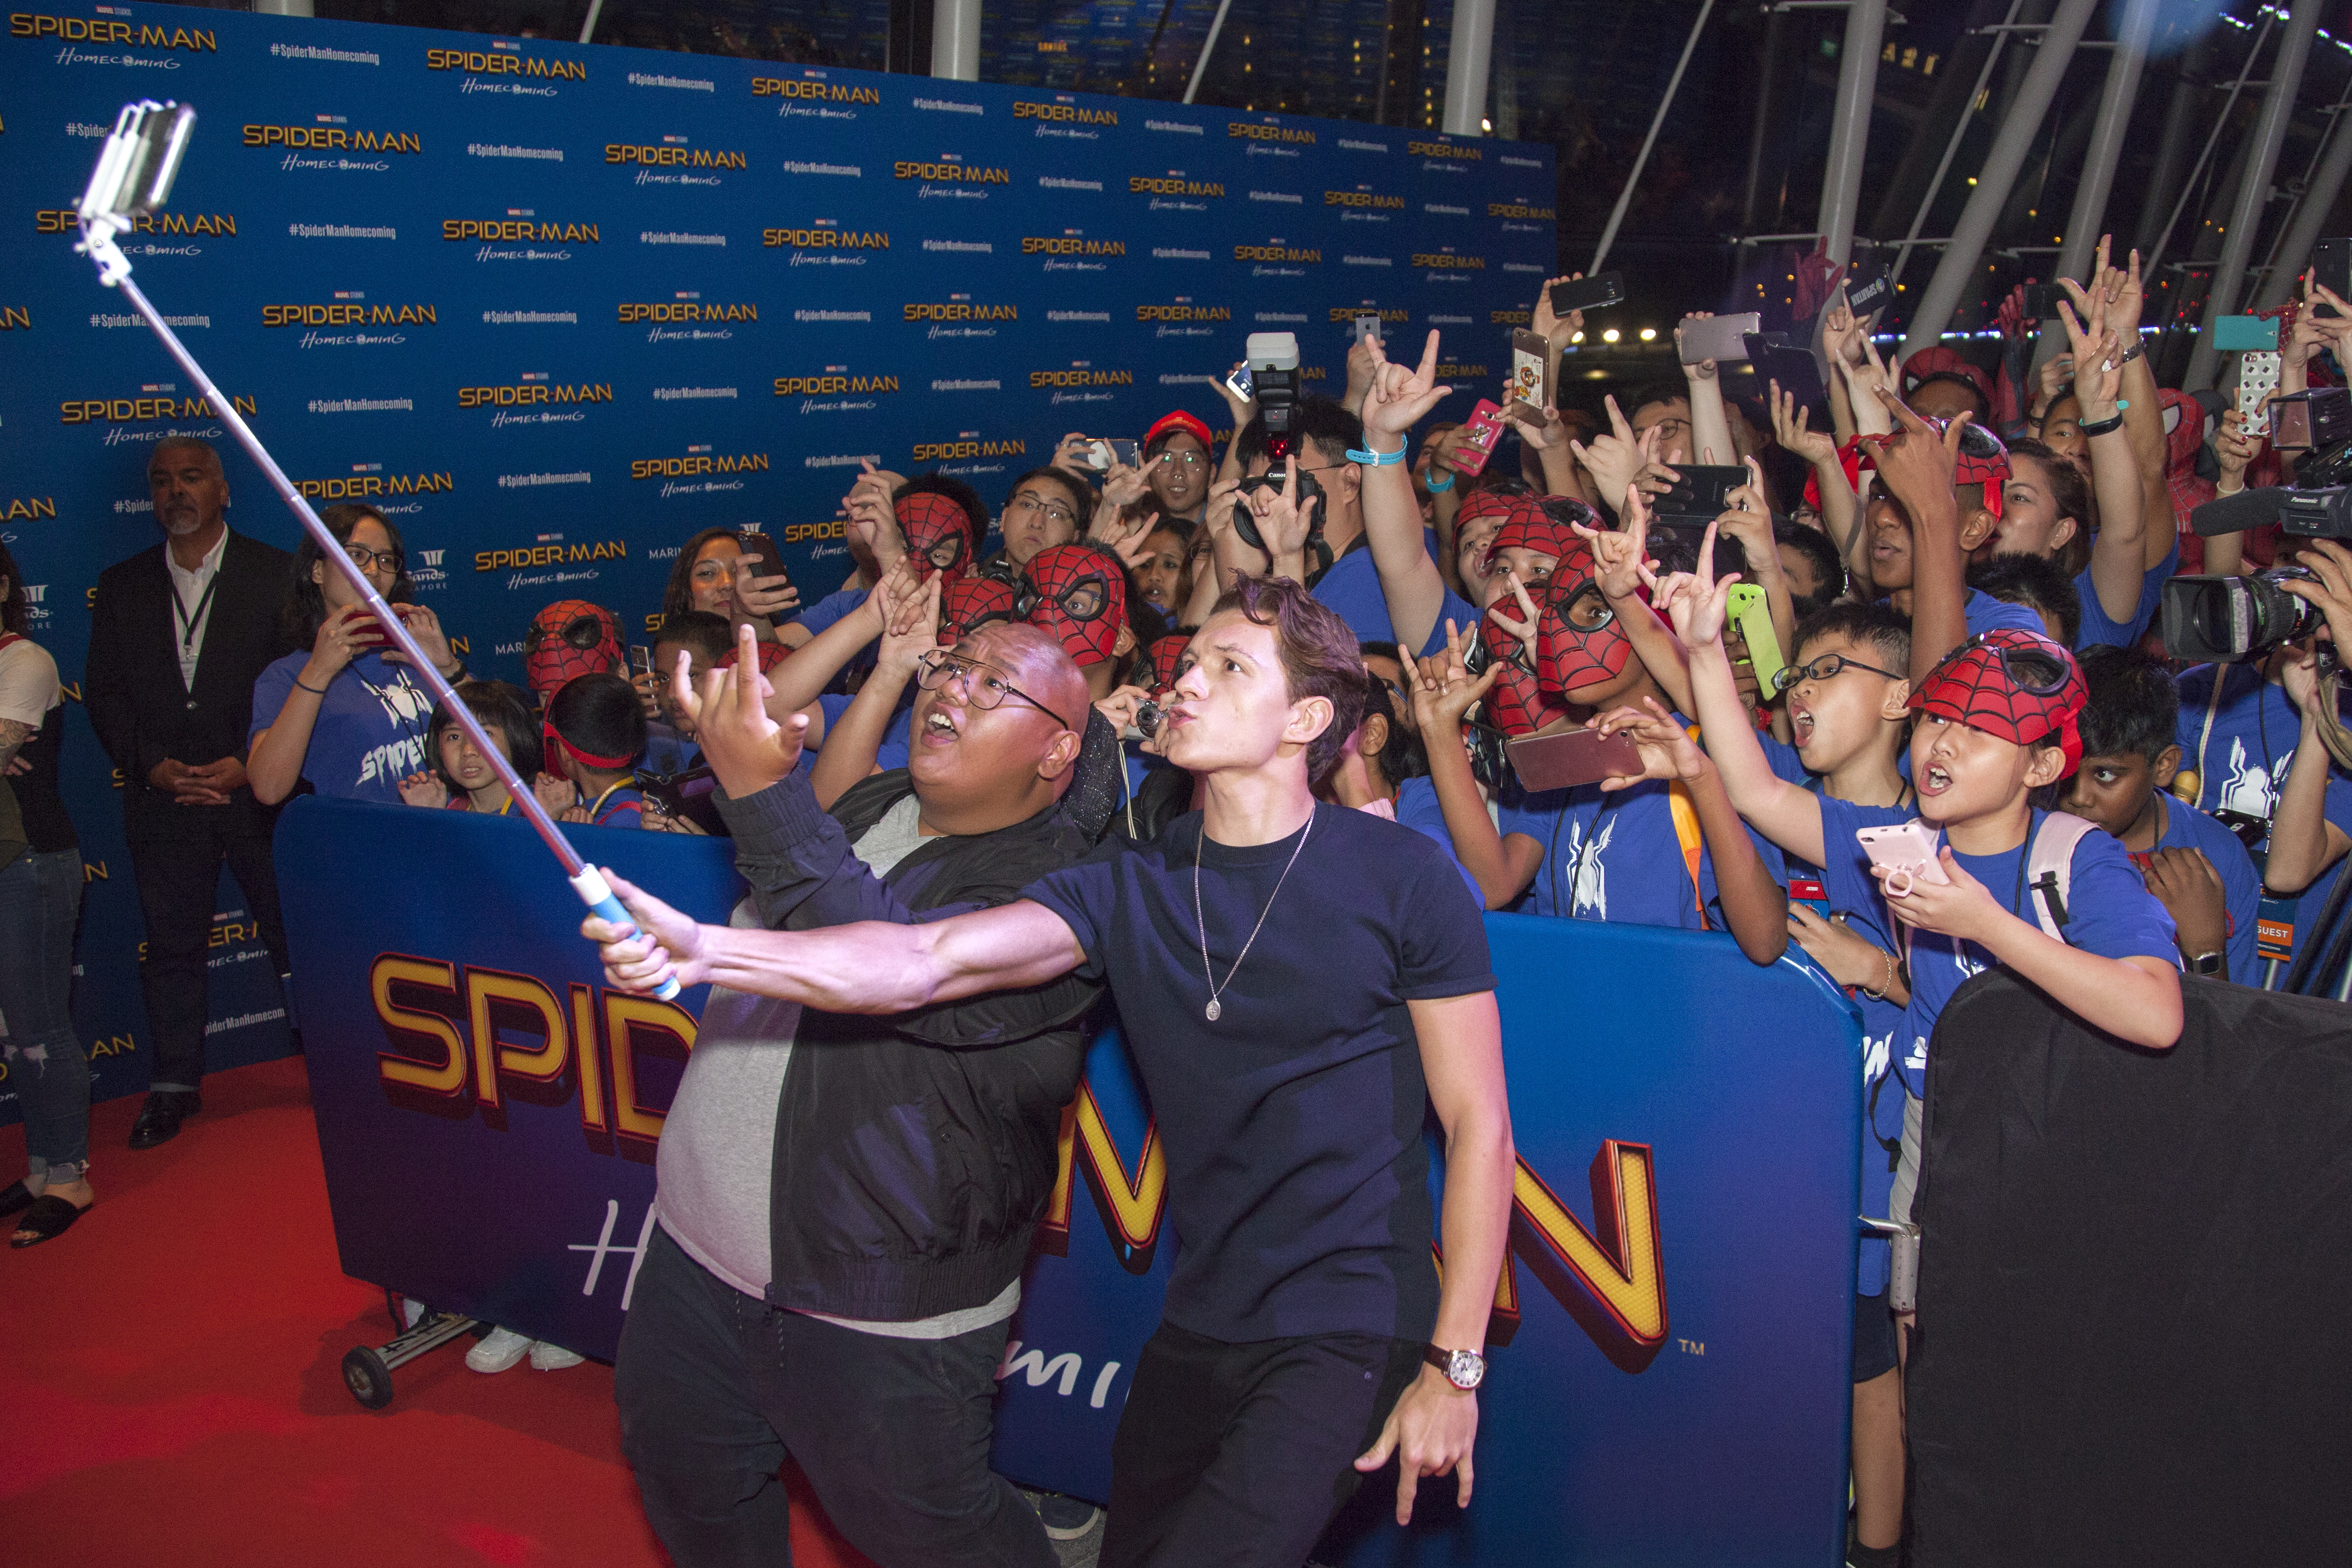 'Spider-Man: Homecoming' Red Carpet Fan Event